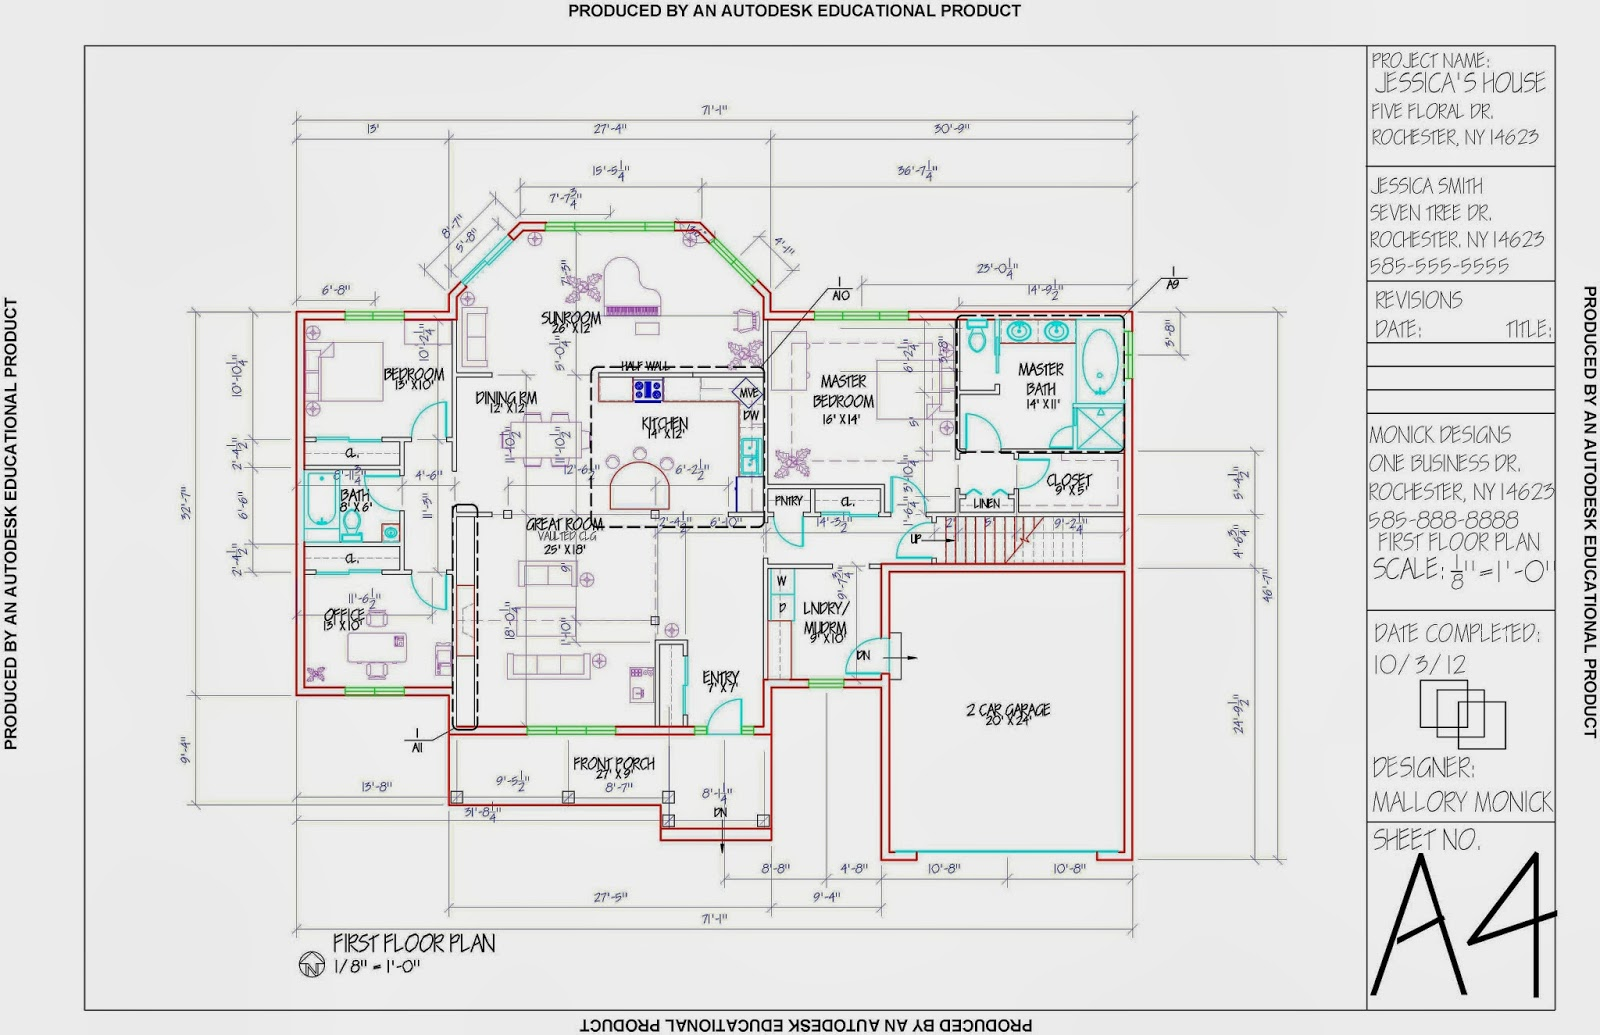 how to draw a reflected ceiling plan in autocad